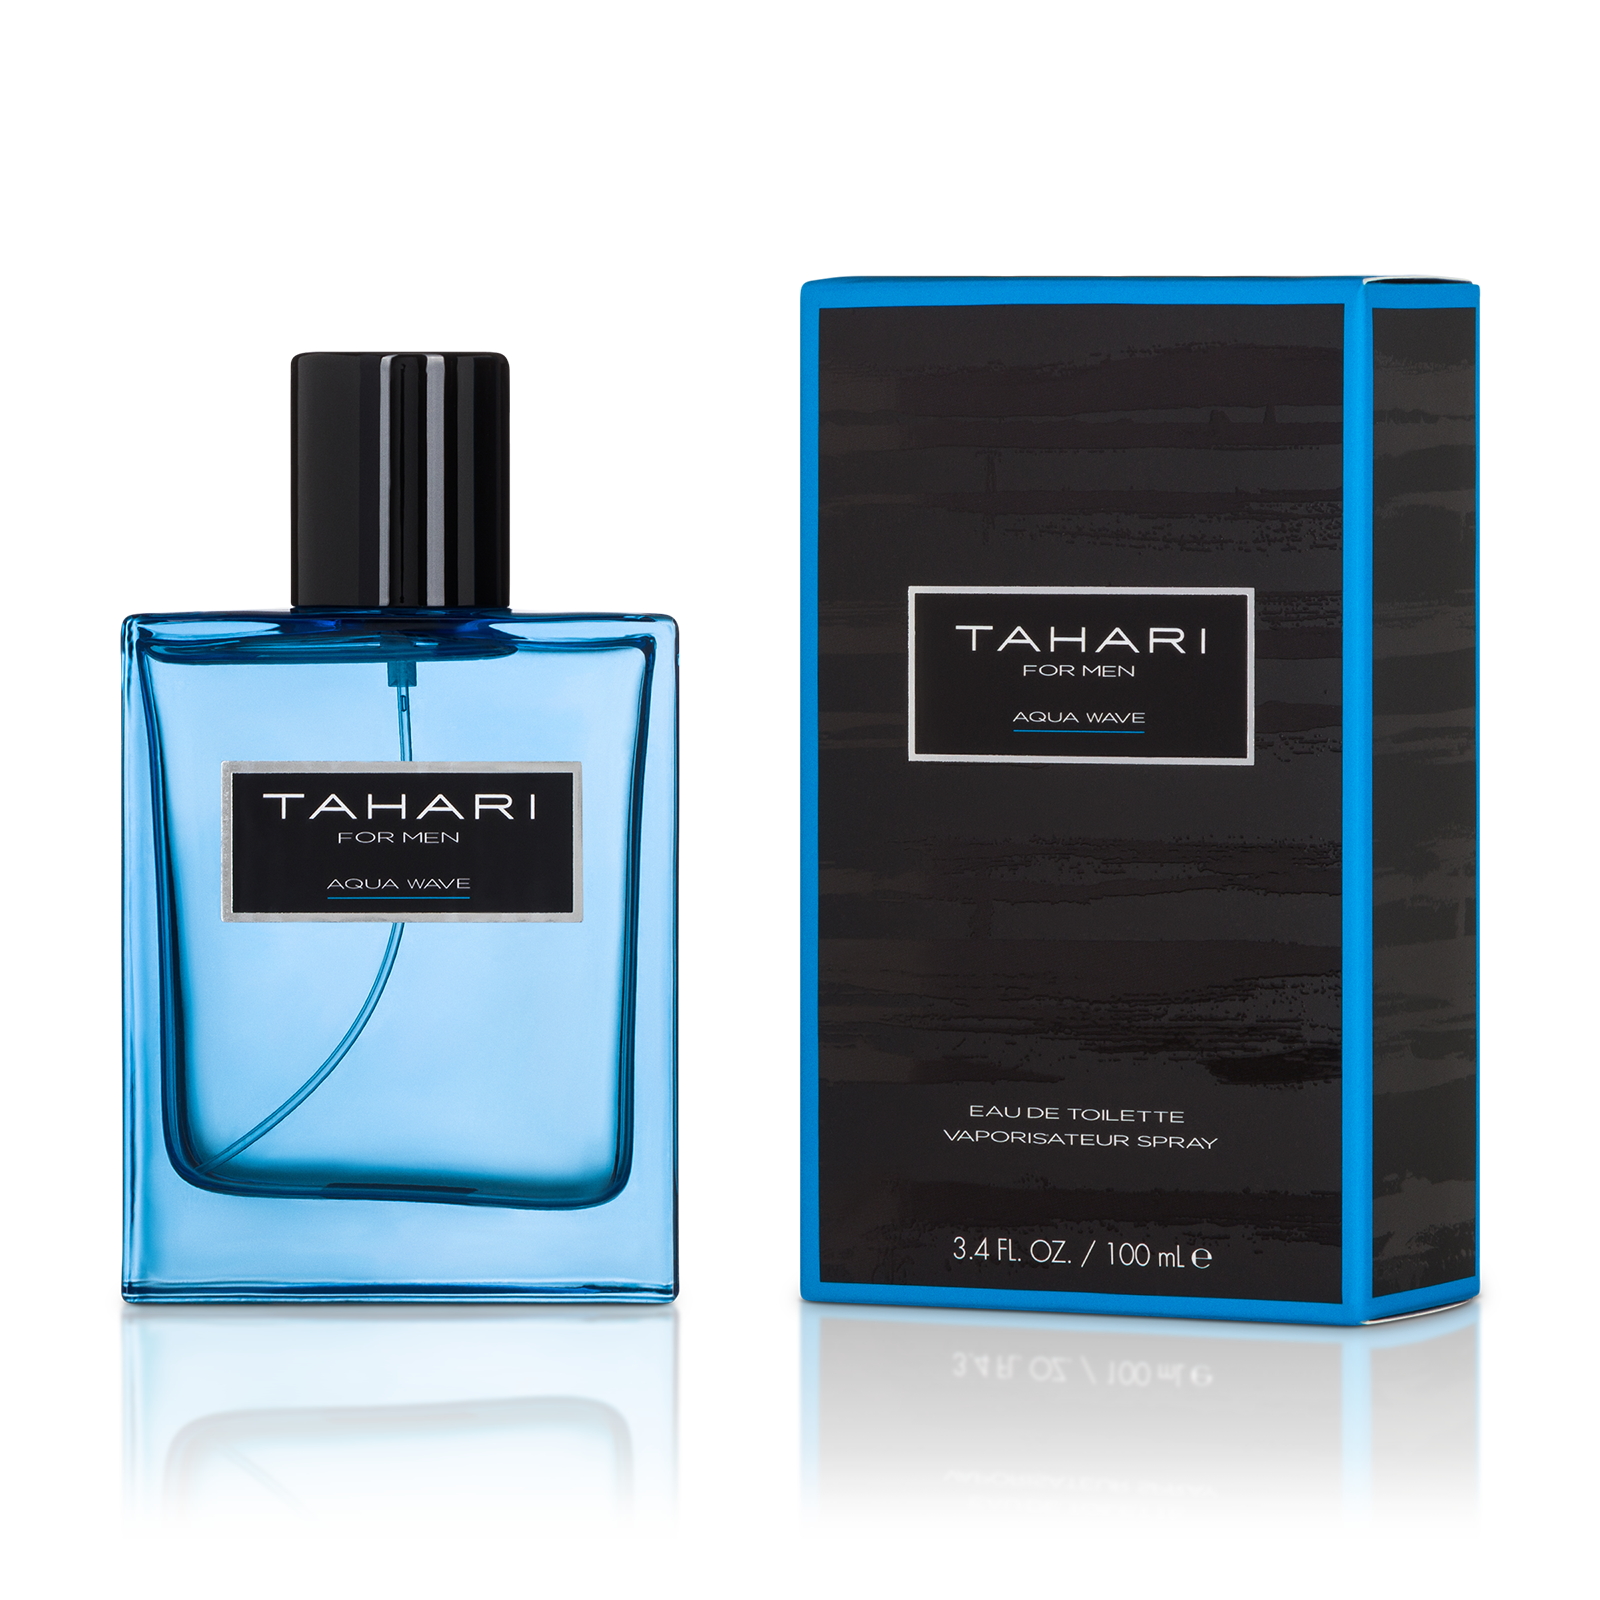 Perfume product picture